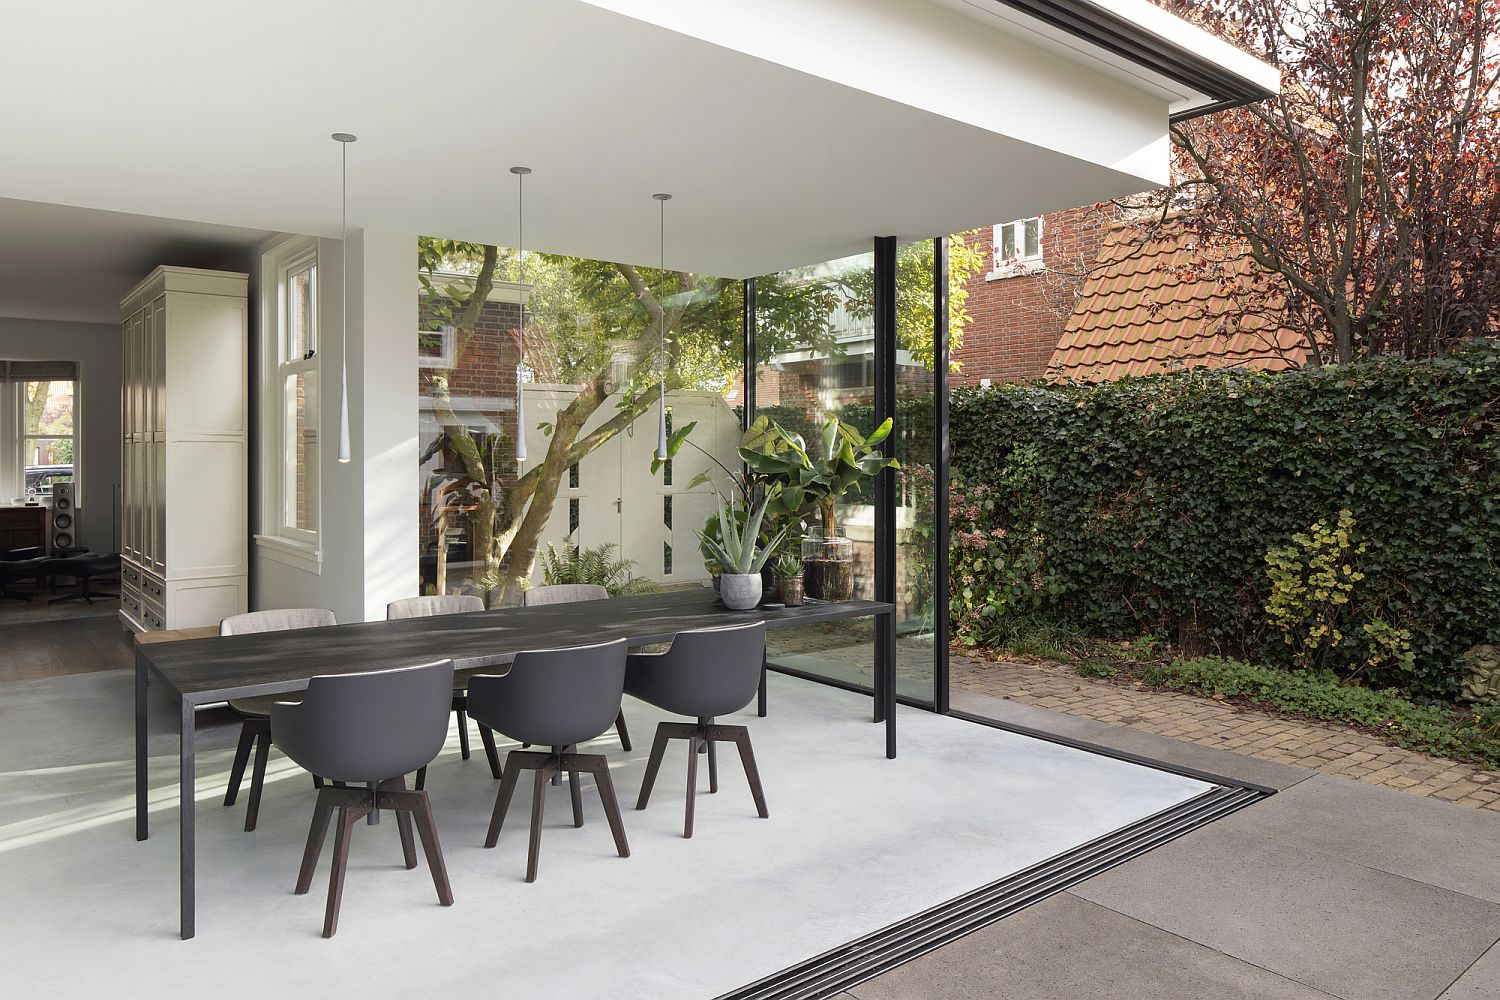 White and gray dining room connected with the Fig Tree landscape outside